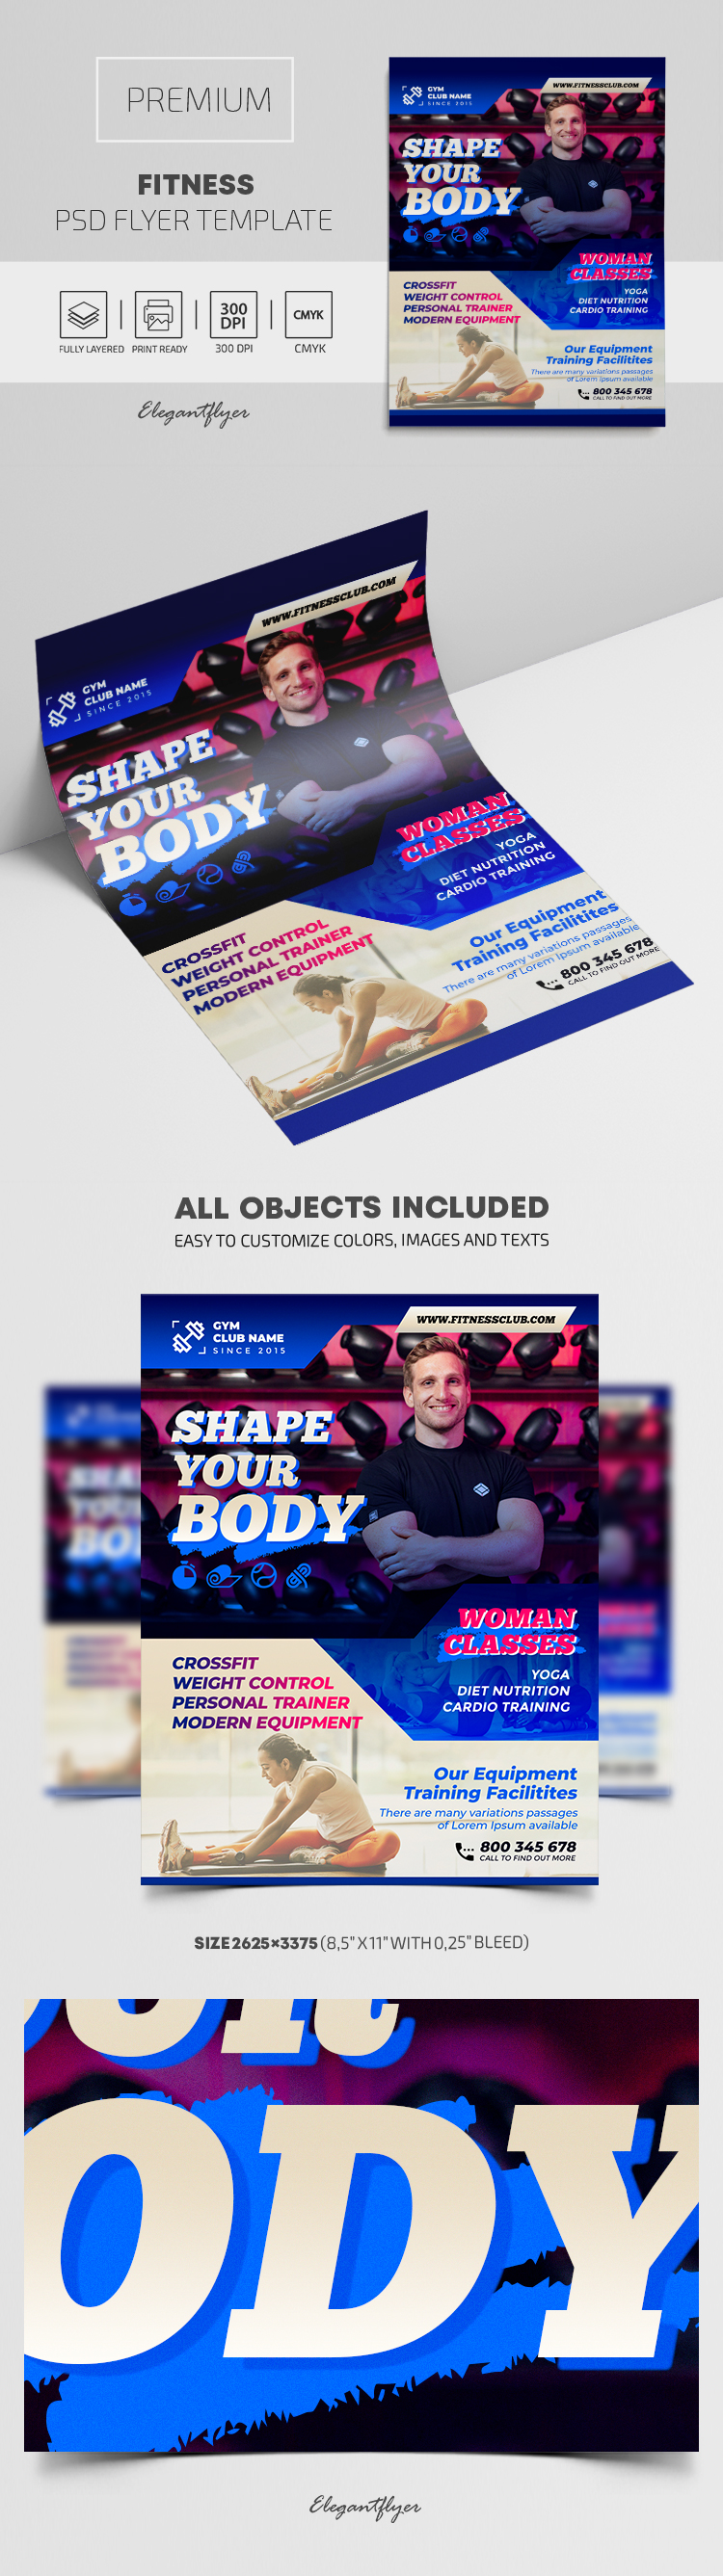 Fitness – Premium PSD Flyer Template